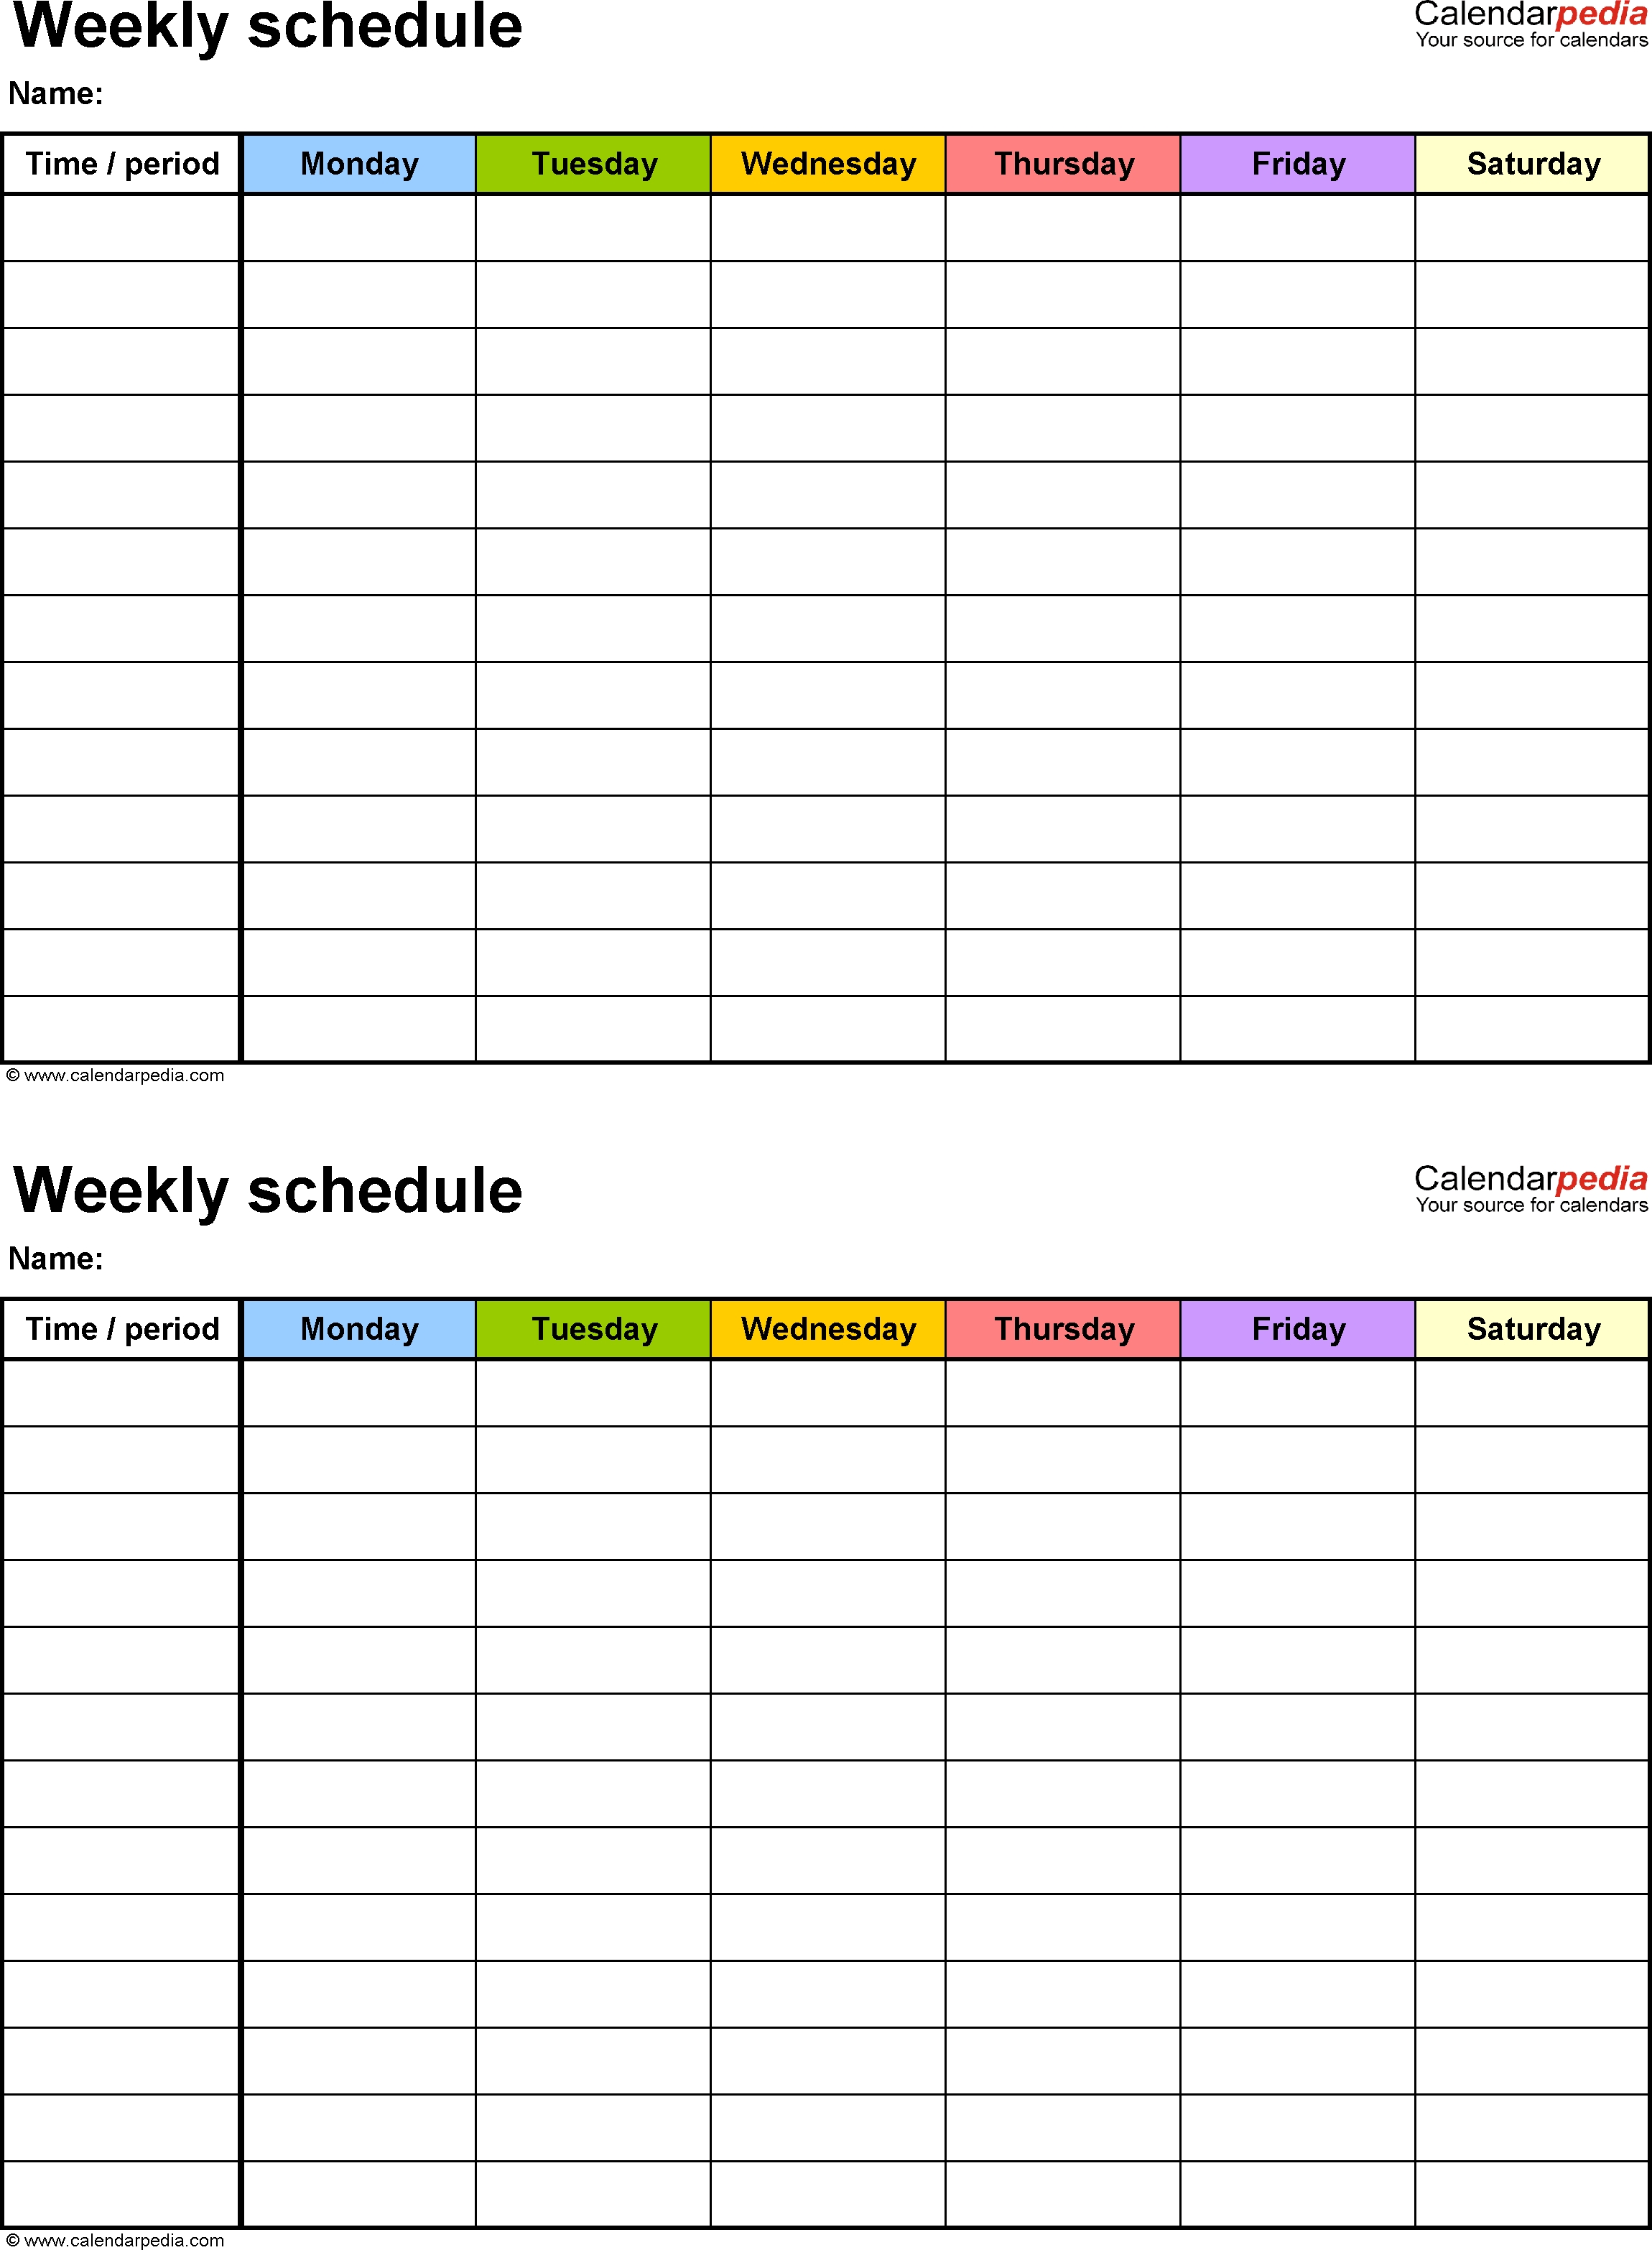 Free Weekly Schedule Templates For Pdf - 18 Templates with regard to Pdf Free Monday - Friday Weekly Planner